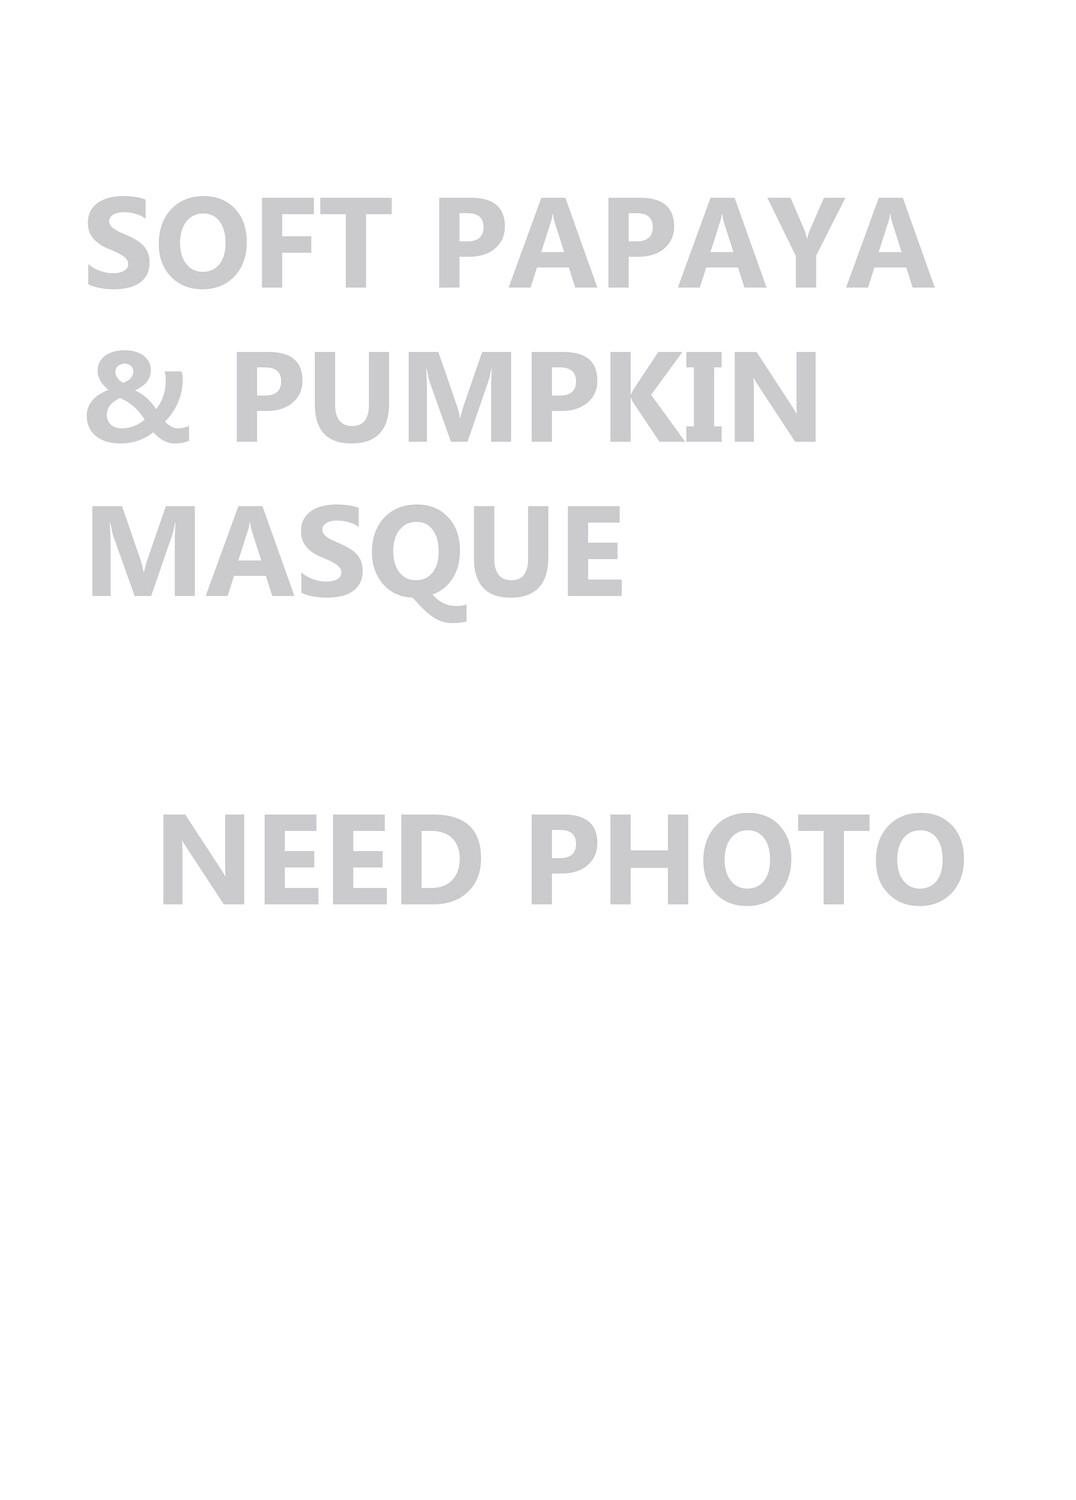 Soft Papaya & Pumpkin Masque